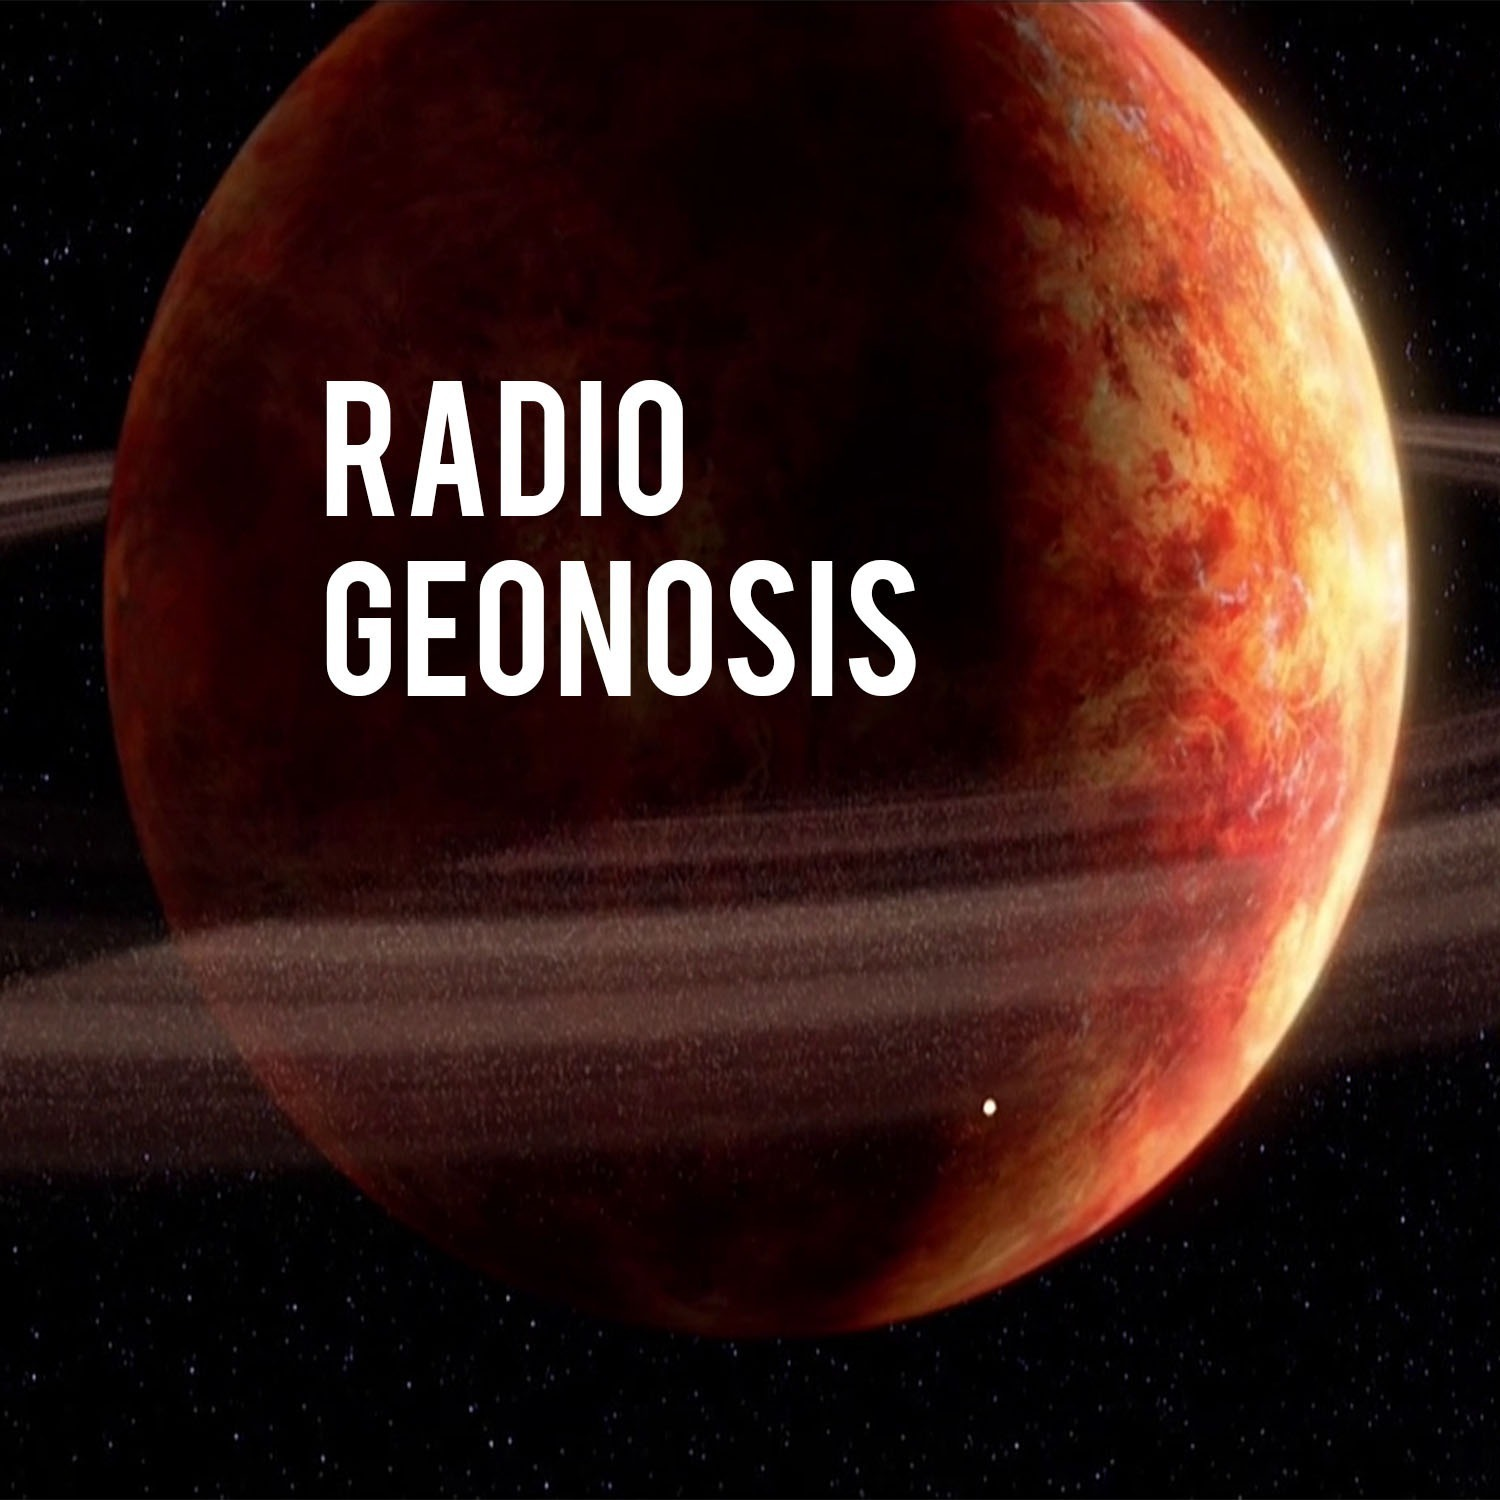 061 - Radio Geonosis Ep. 61 - Our Favorite Planets